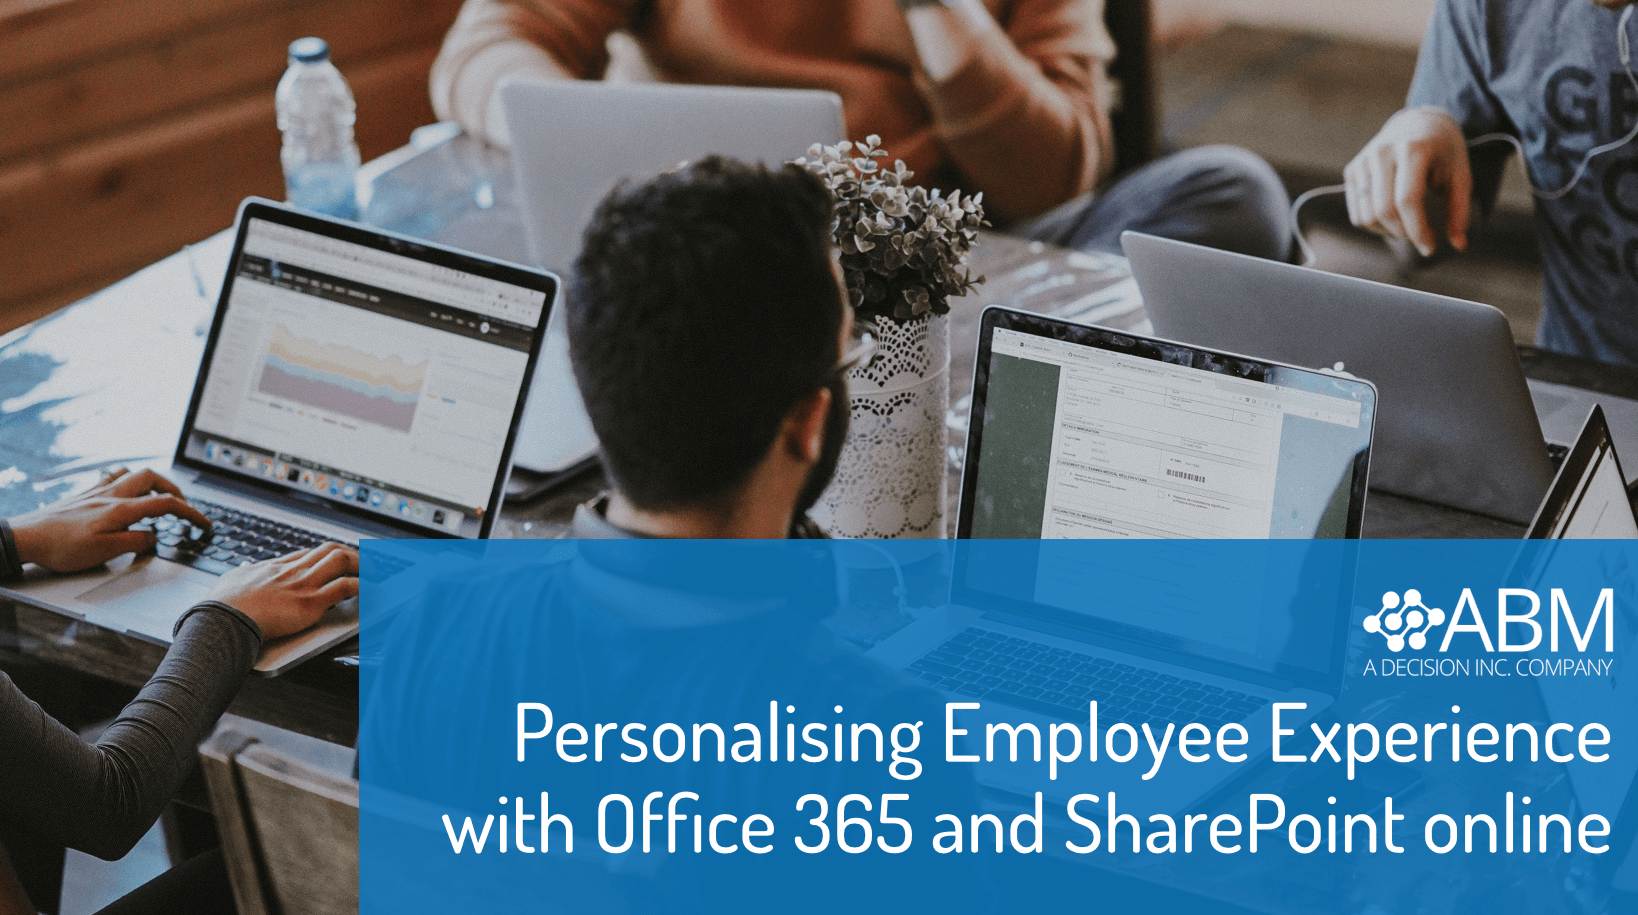 Personalising Employee Experience with Office 365 and SharePoint online